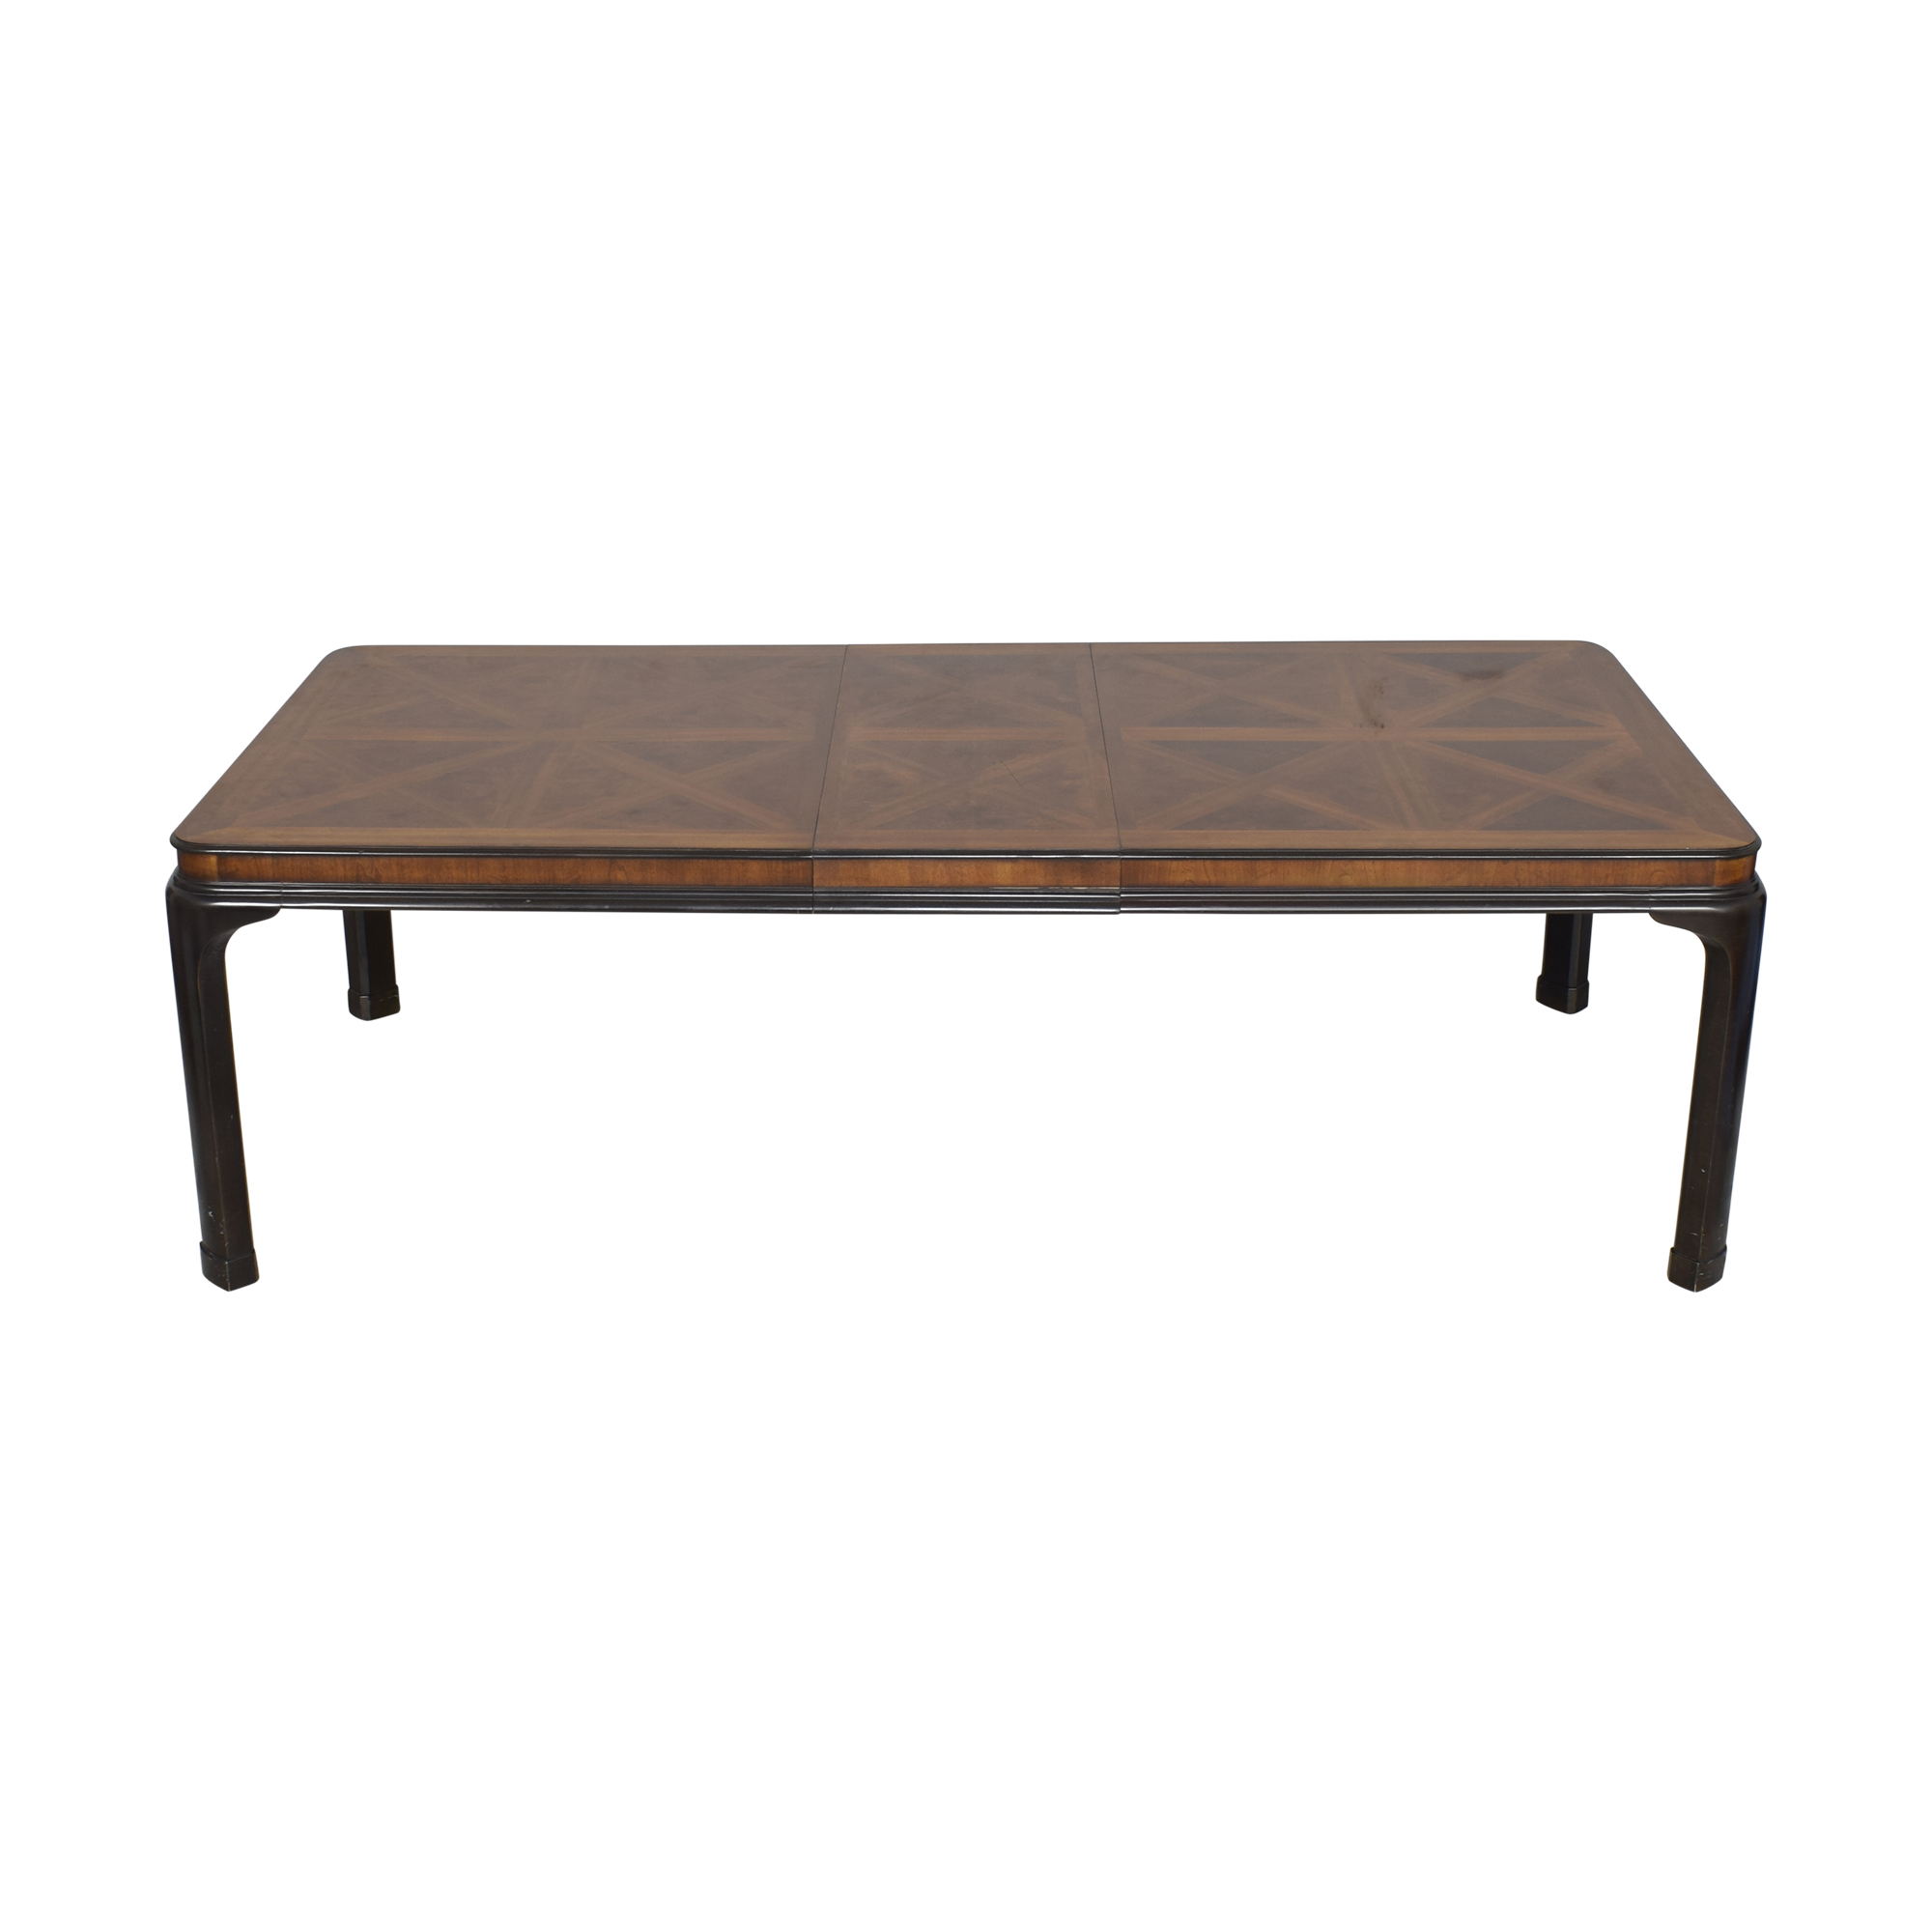 Drexel Heritage Drexel Heritage Connoisseur Dining Table coupon